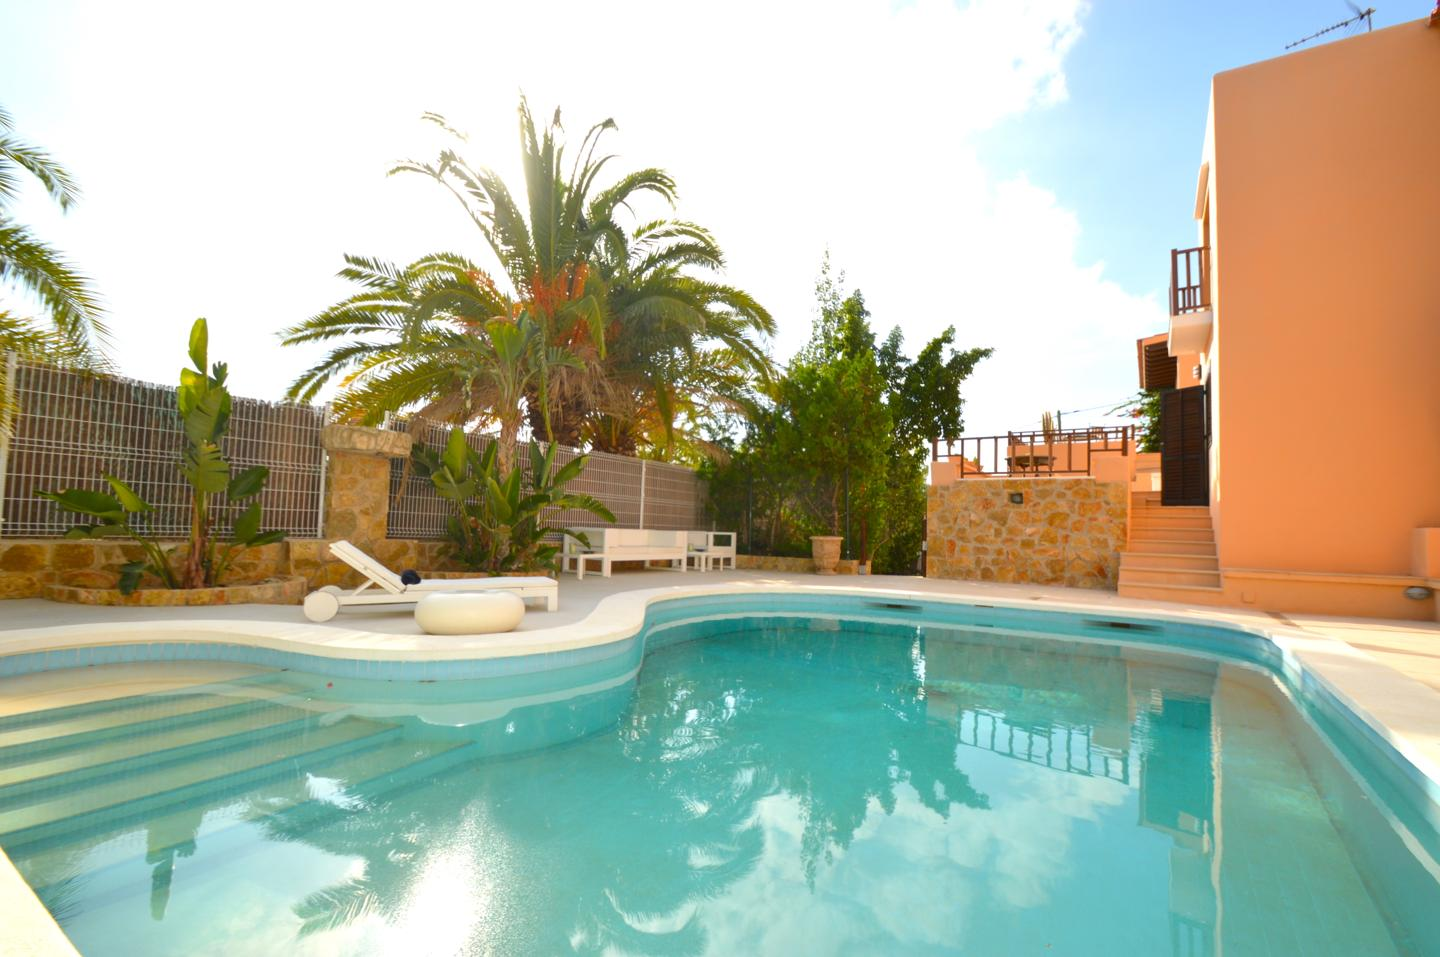 This beautiful Villa with 9 rooms for sale in San Miguel